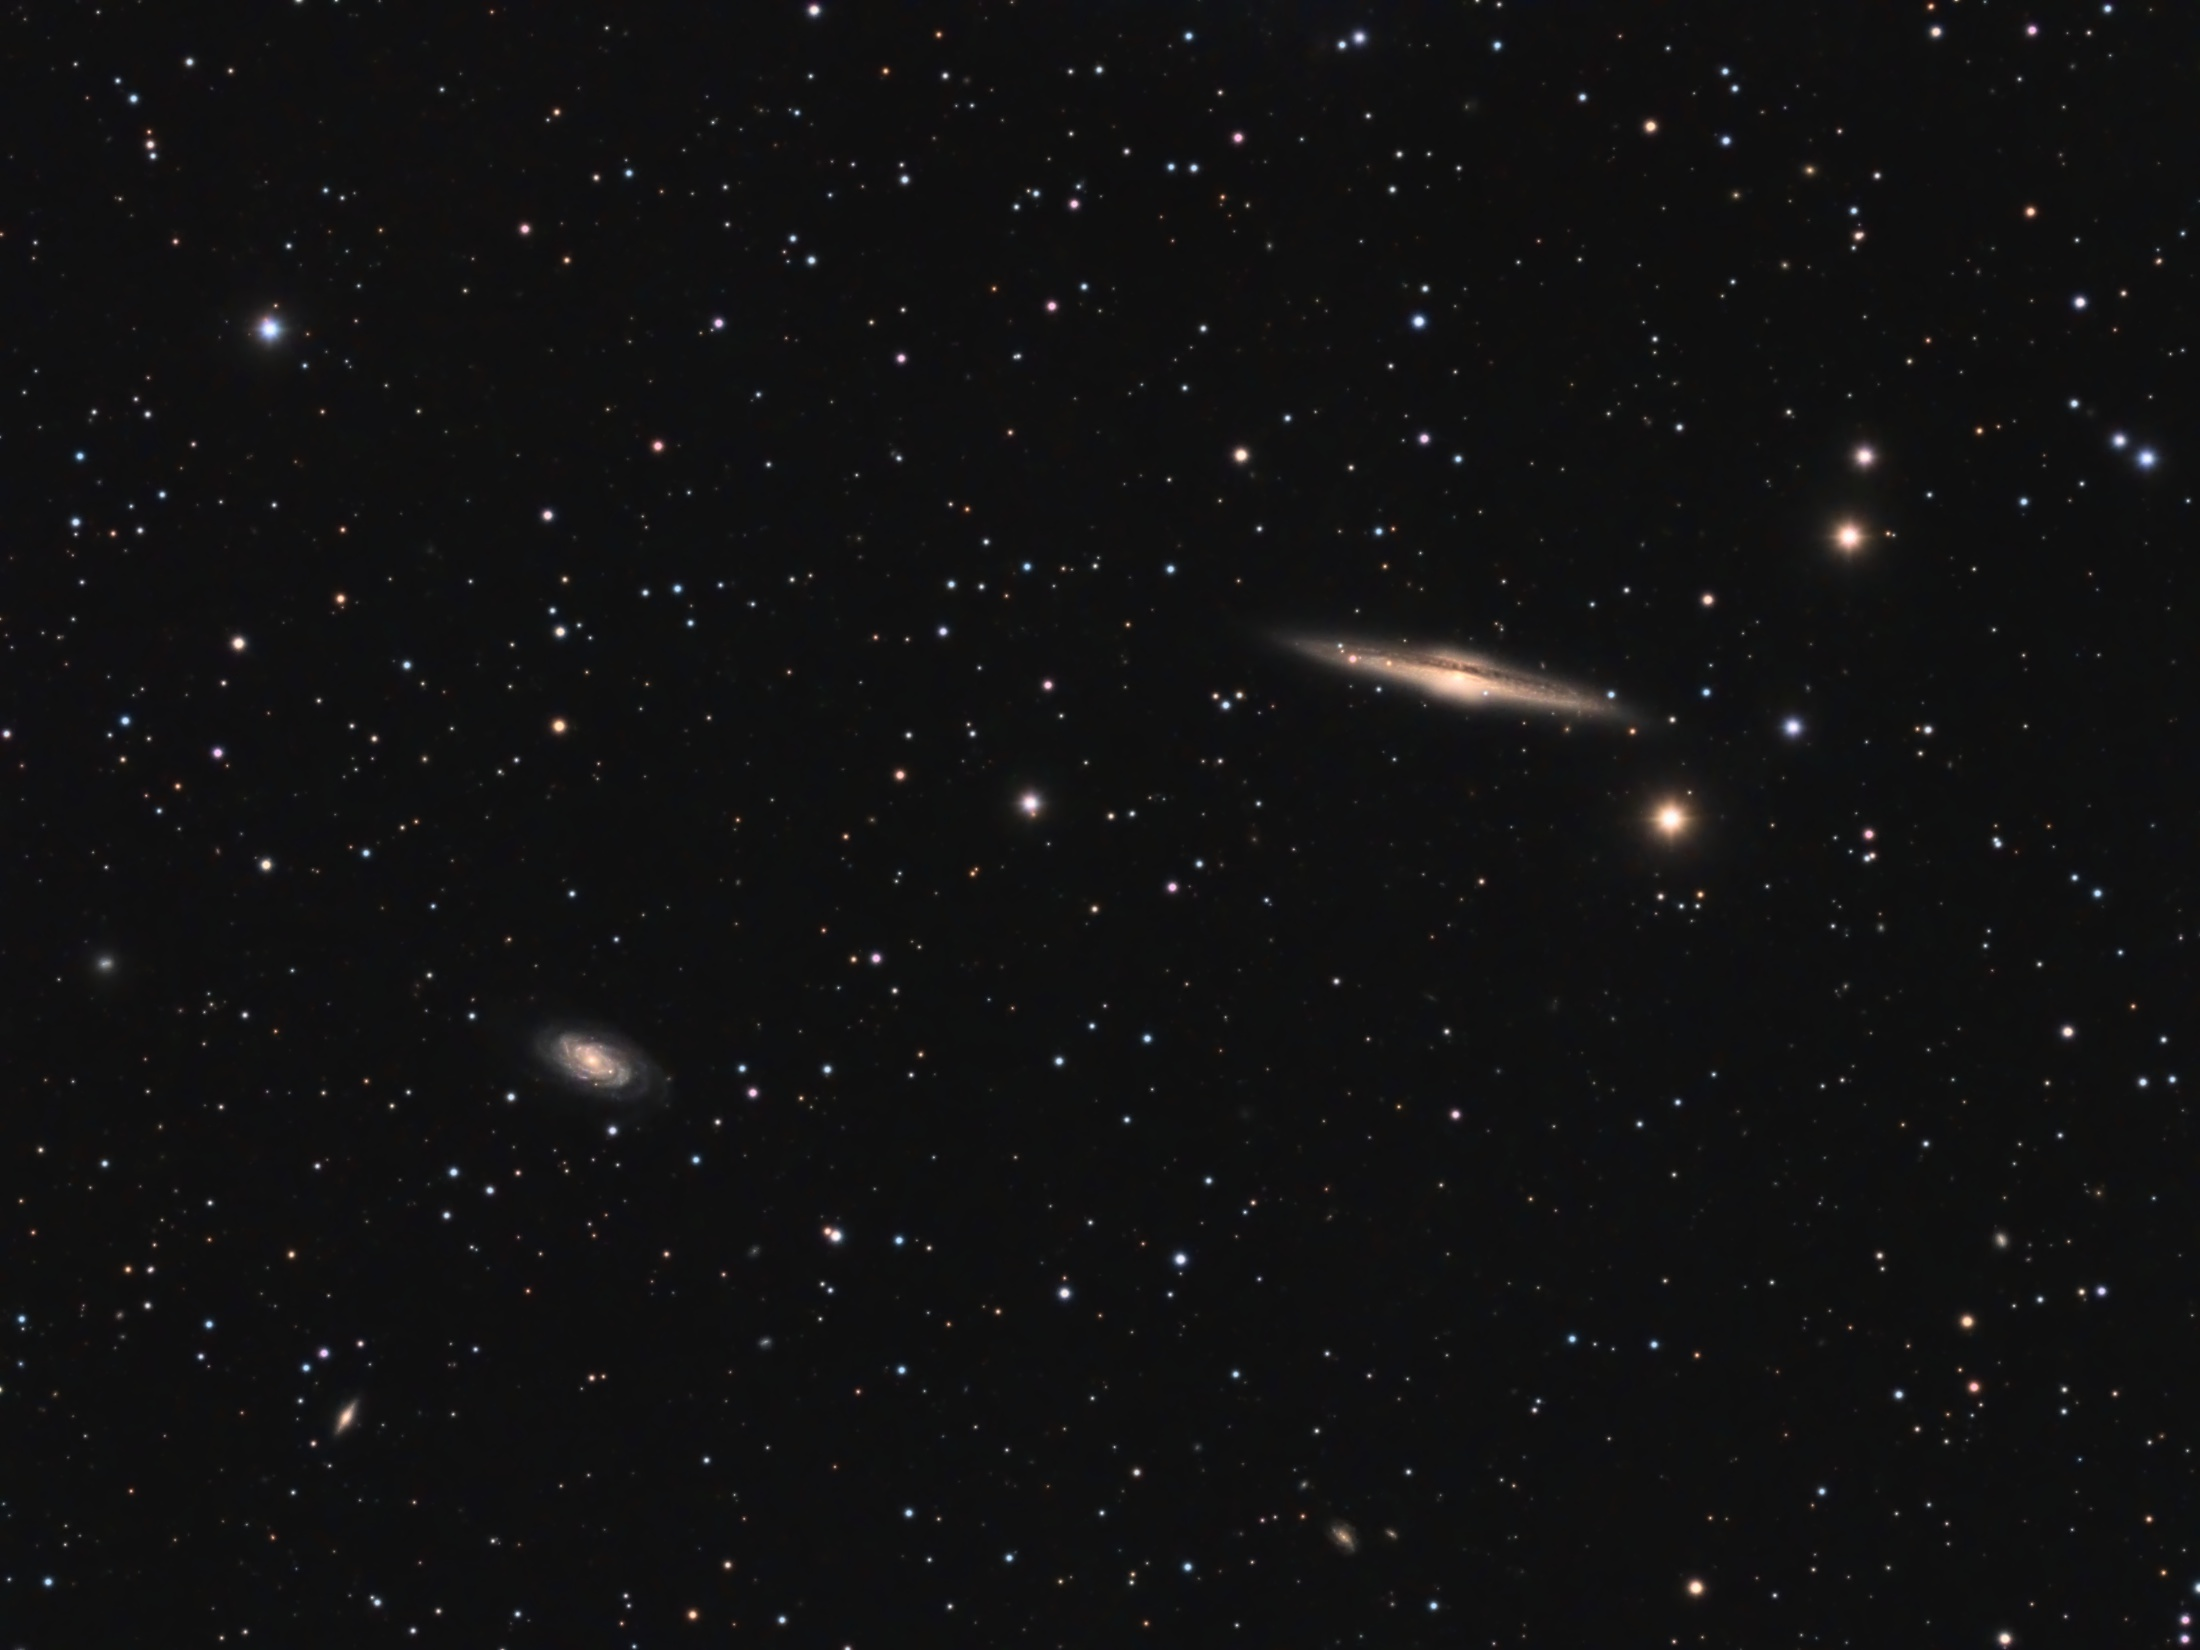 NGC 5746 & NGC 5740 – Barred Spiral Galaxies